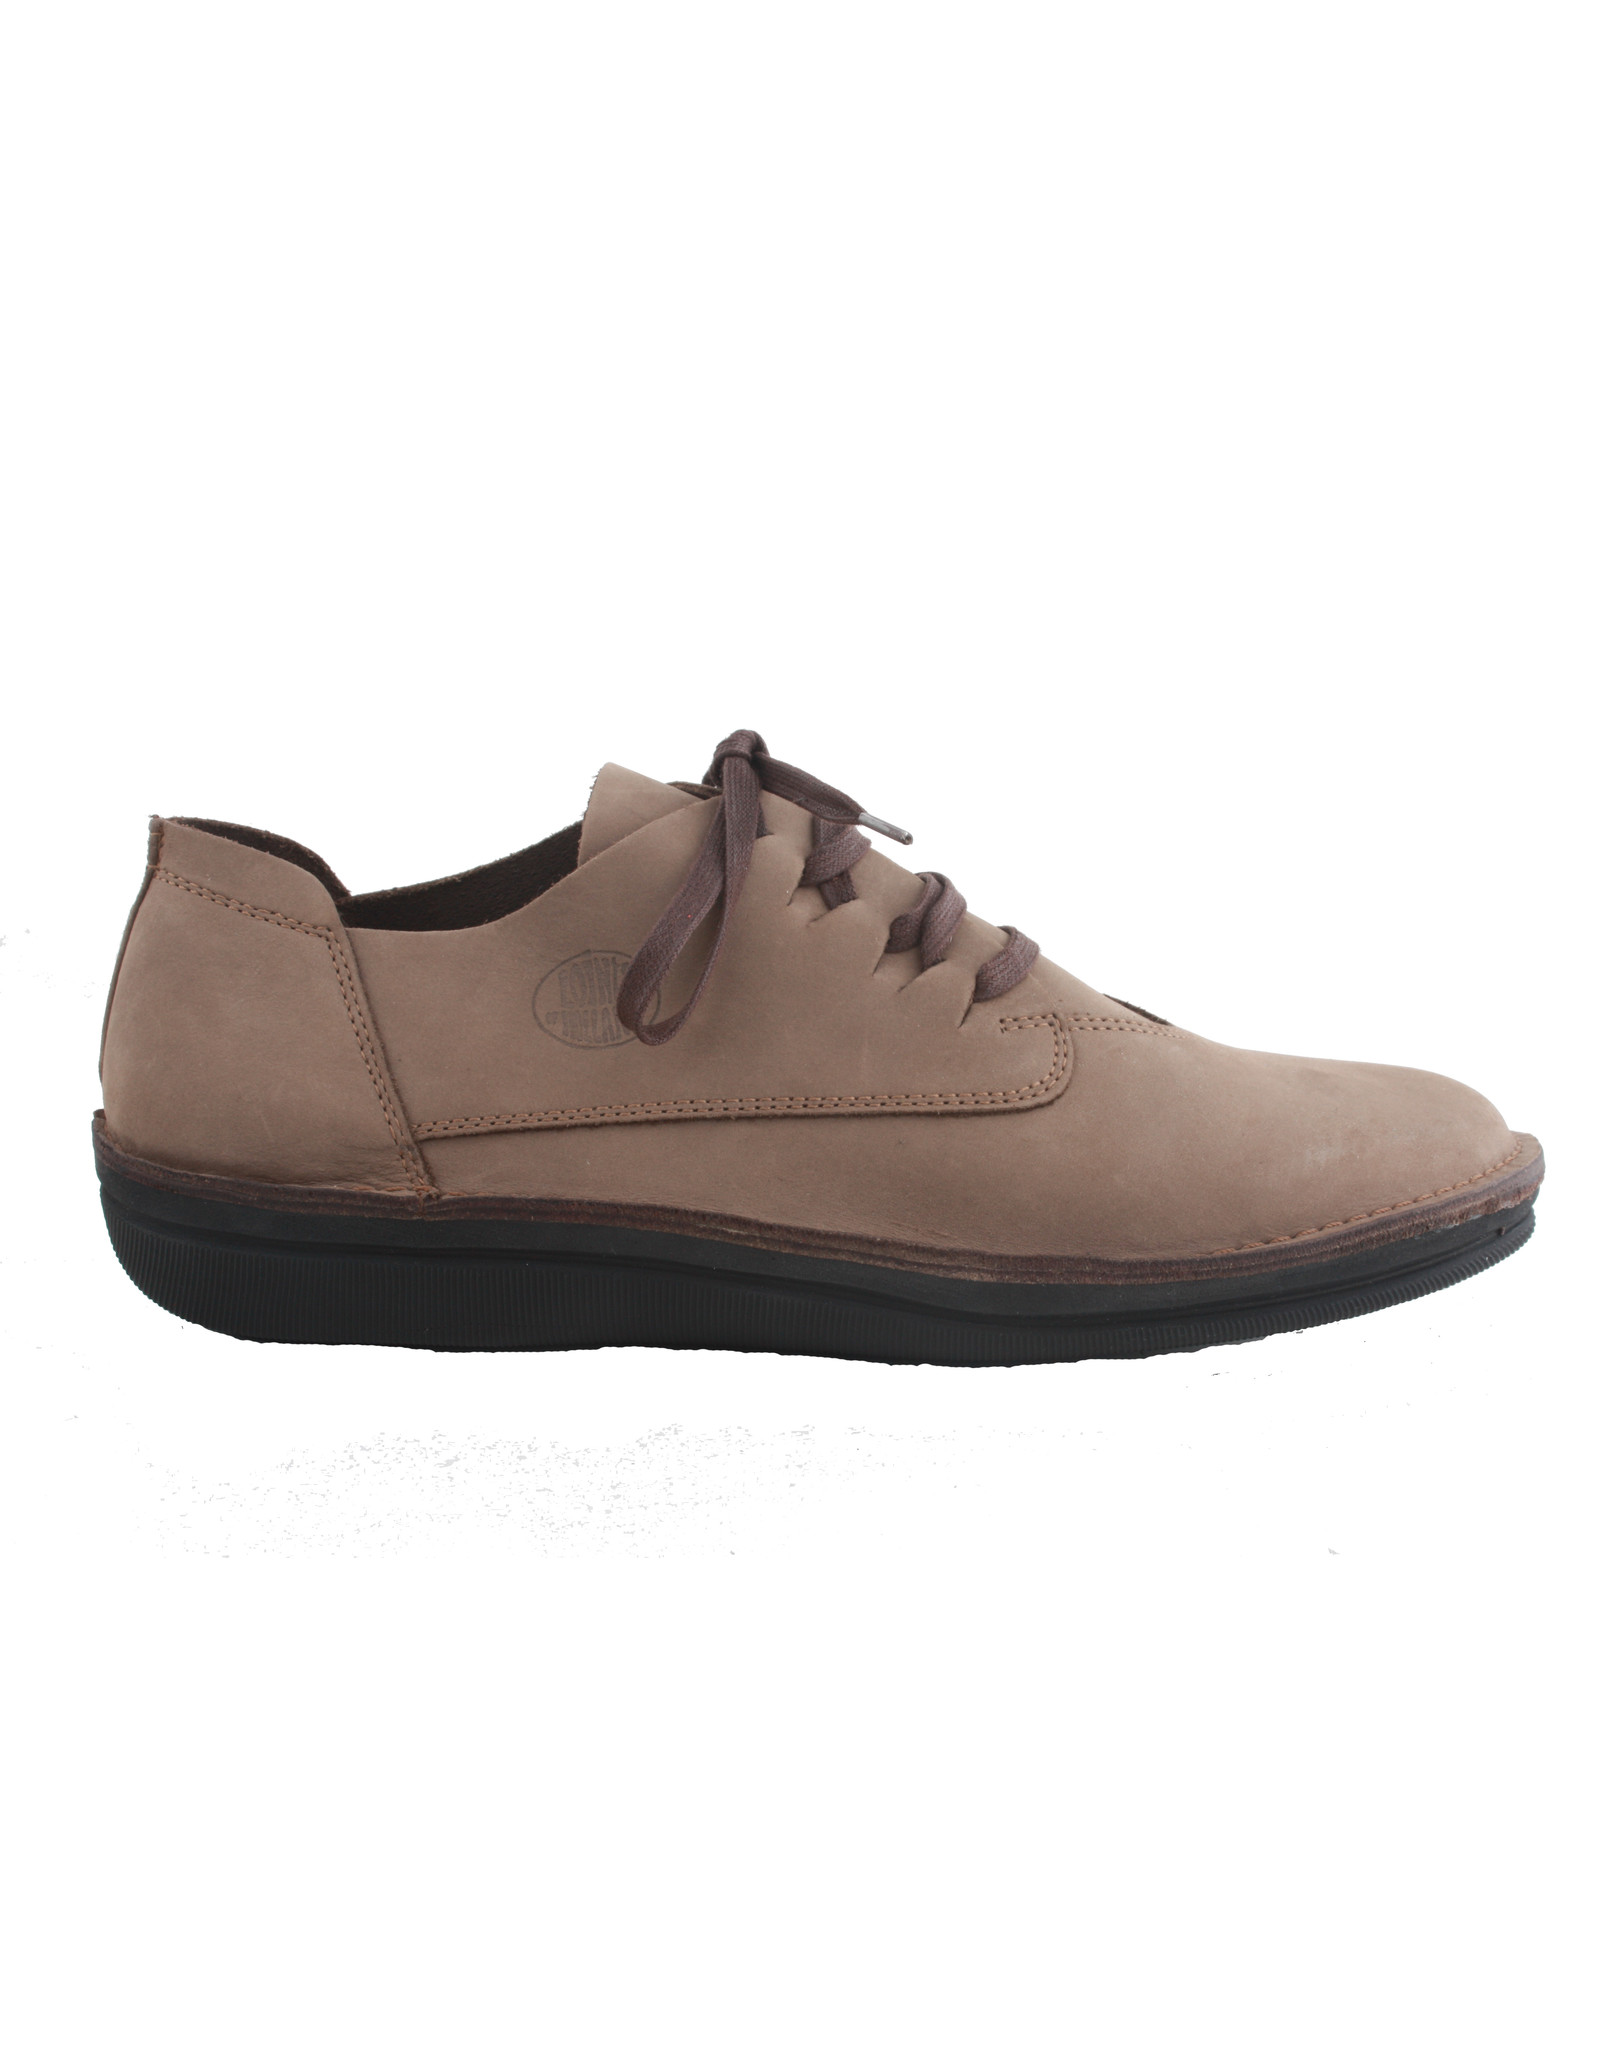 Loints Turbo 49801 302 taupe